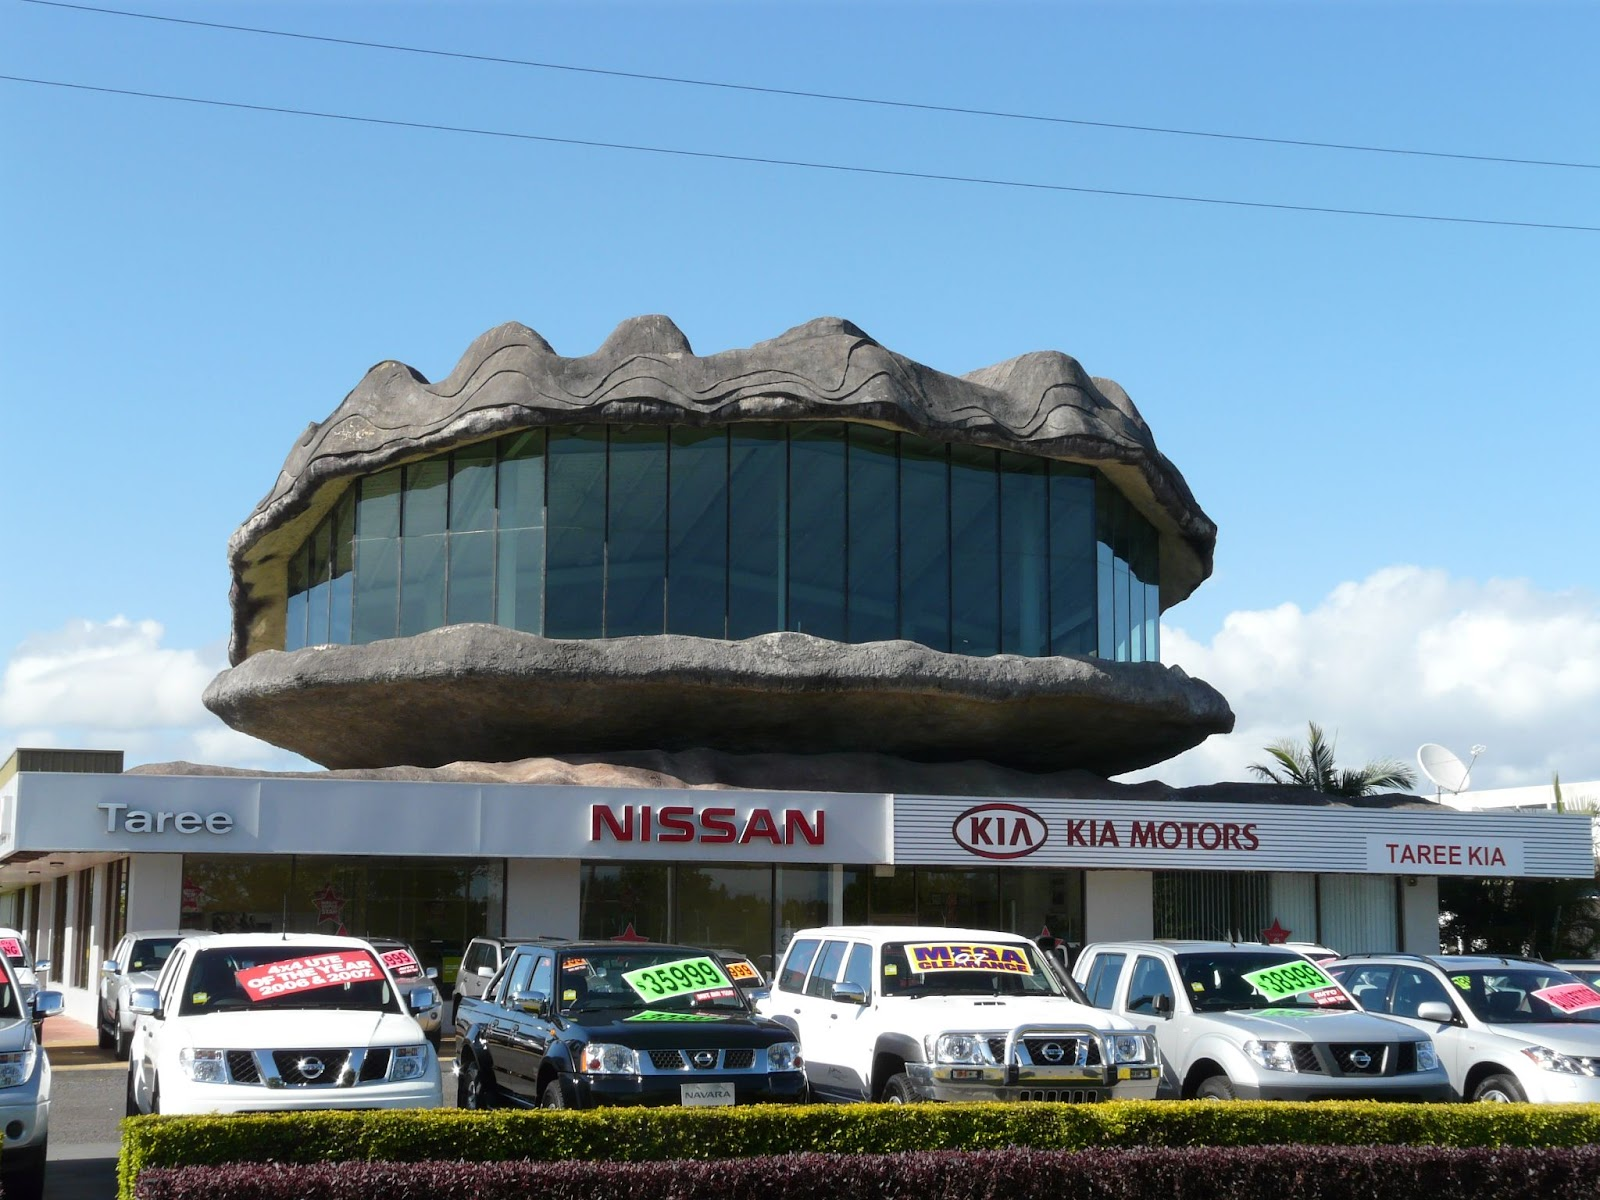 the big oyster sits on top of a nissan garage